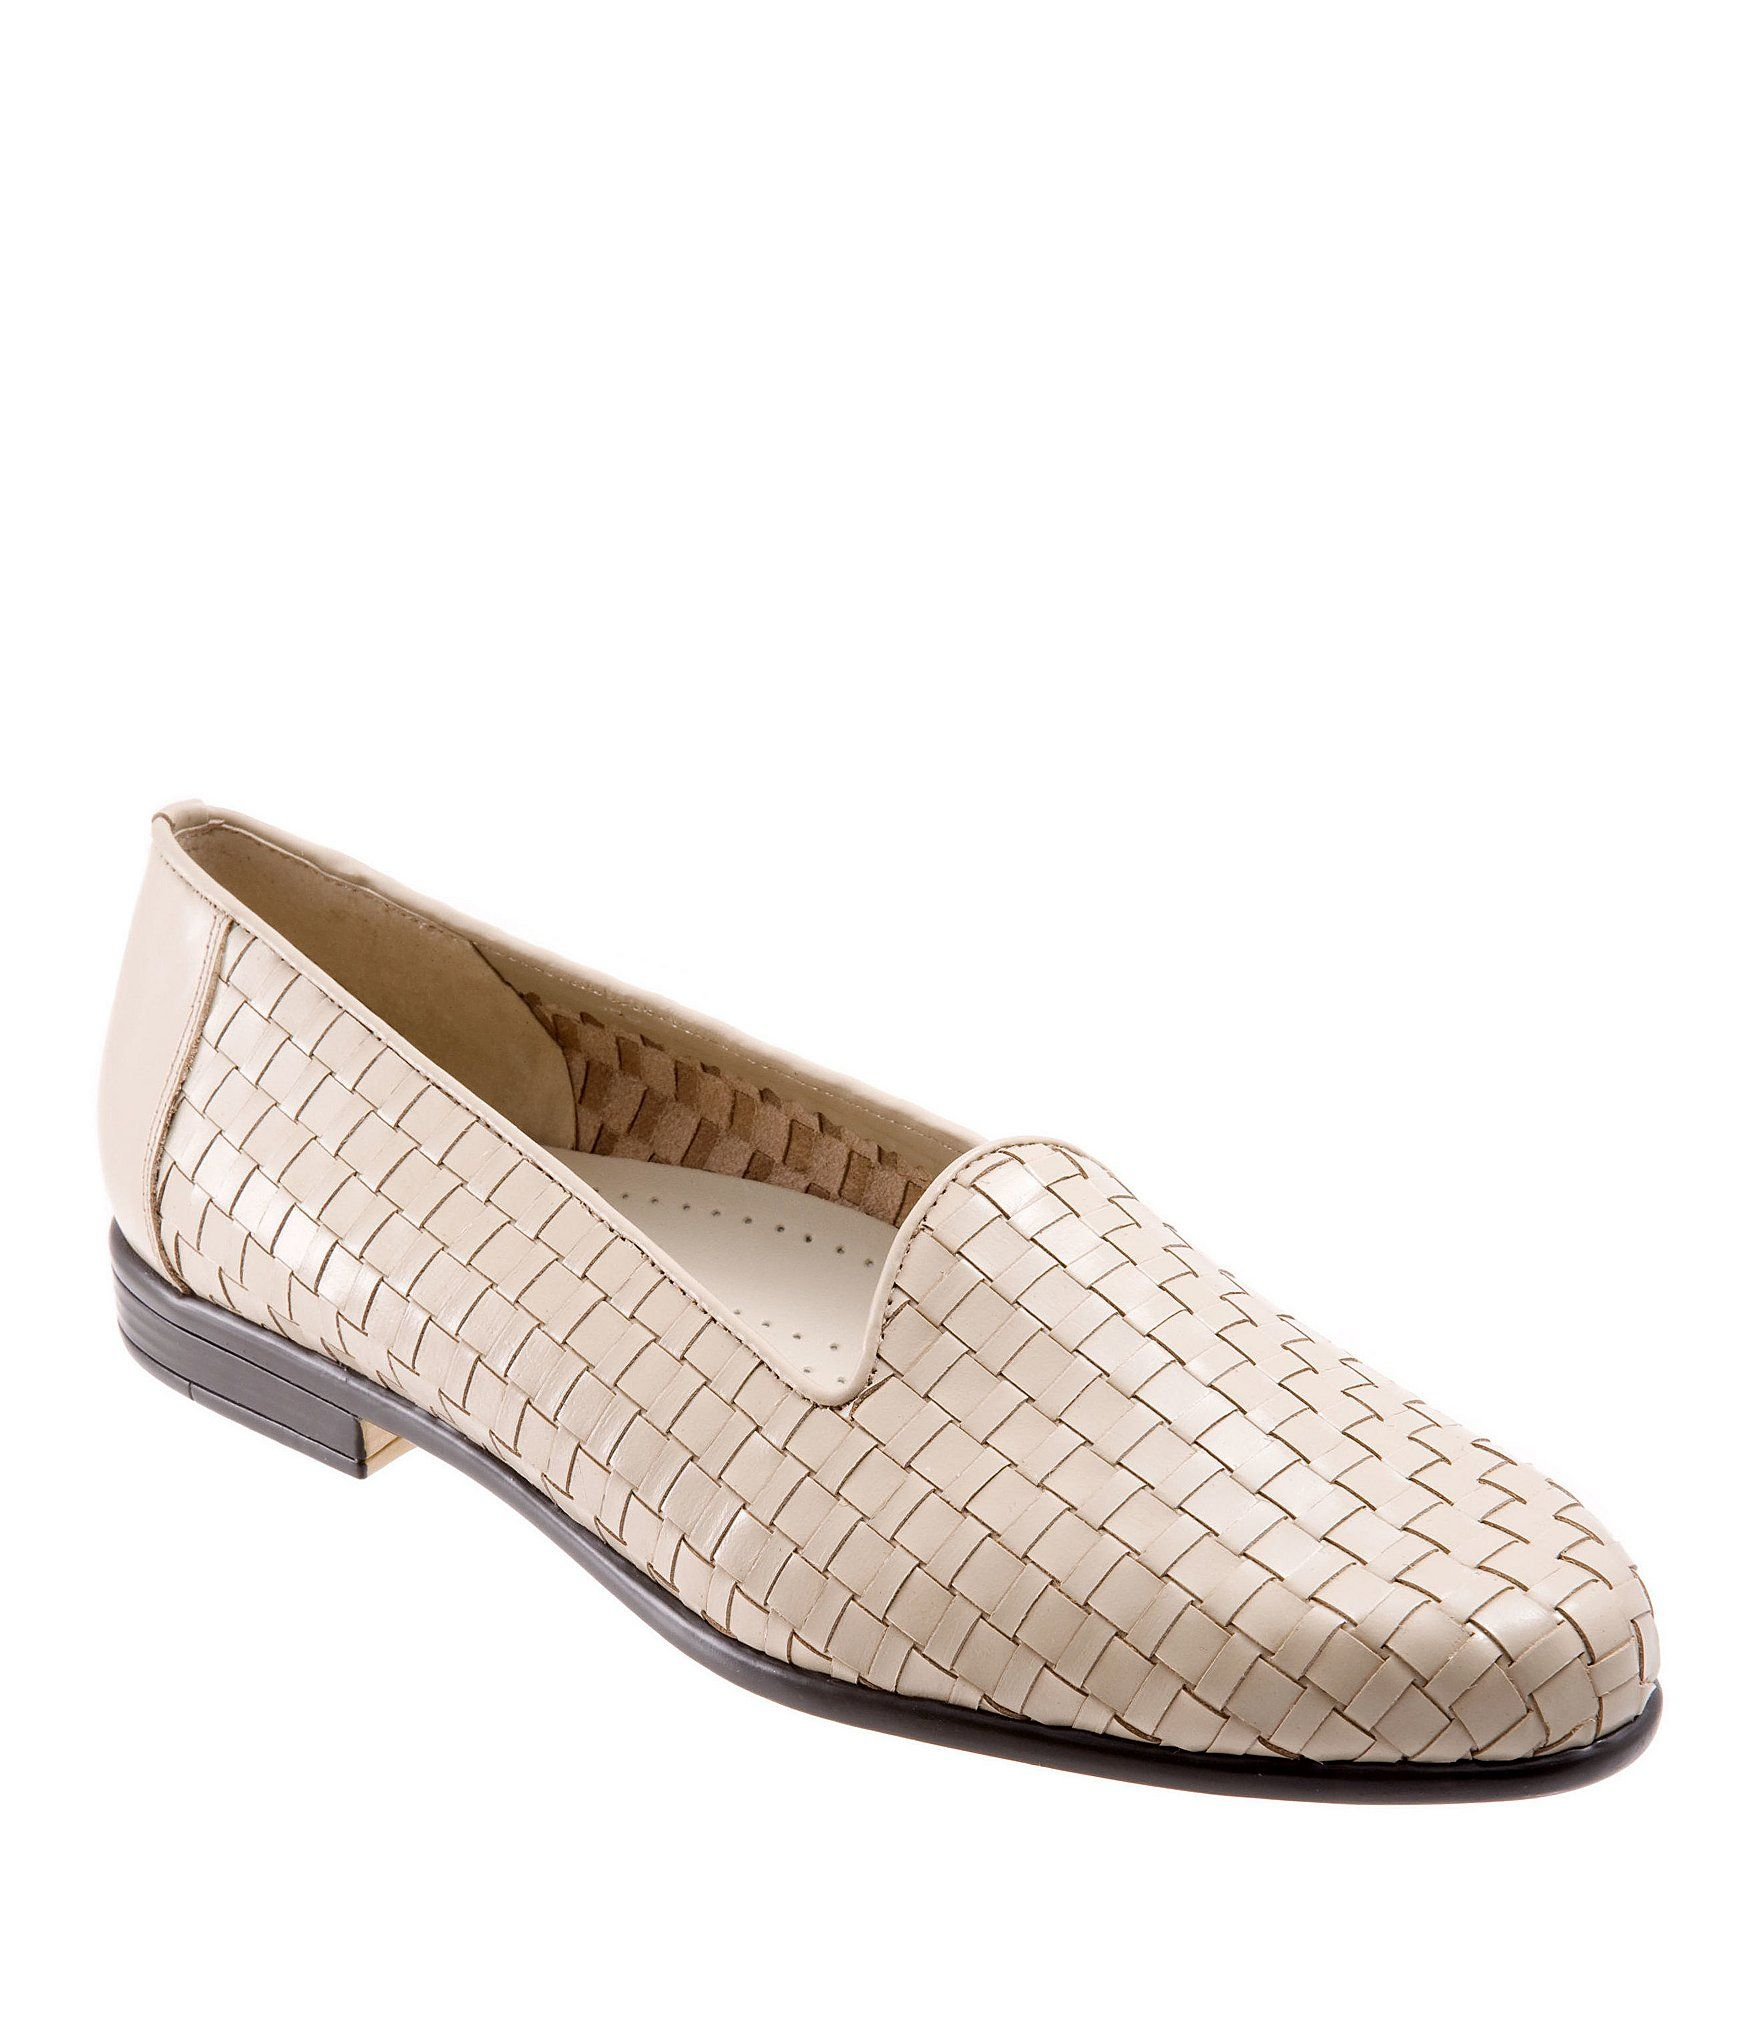 From Trotters, the Women's Liz woven loafers feature:basketweave leather upperunlined construction Soft cloth lining on the vampCushioned polyurethane footbed with stitchless embossed designLightweight flexible rubberized sole0.625